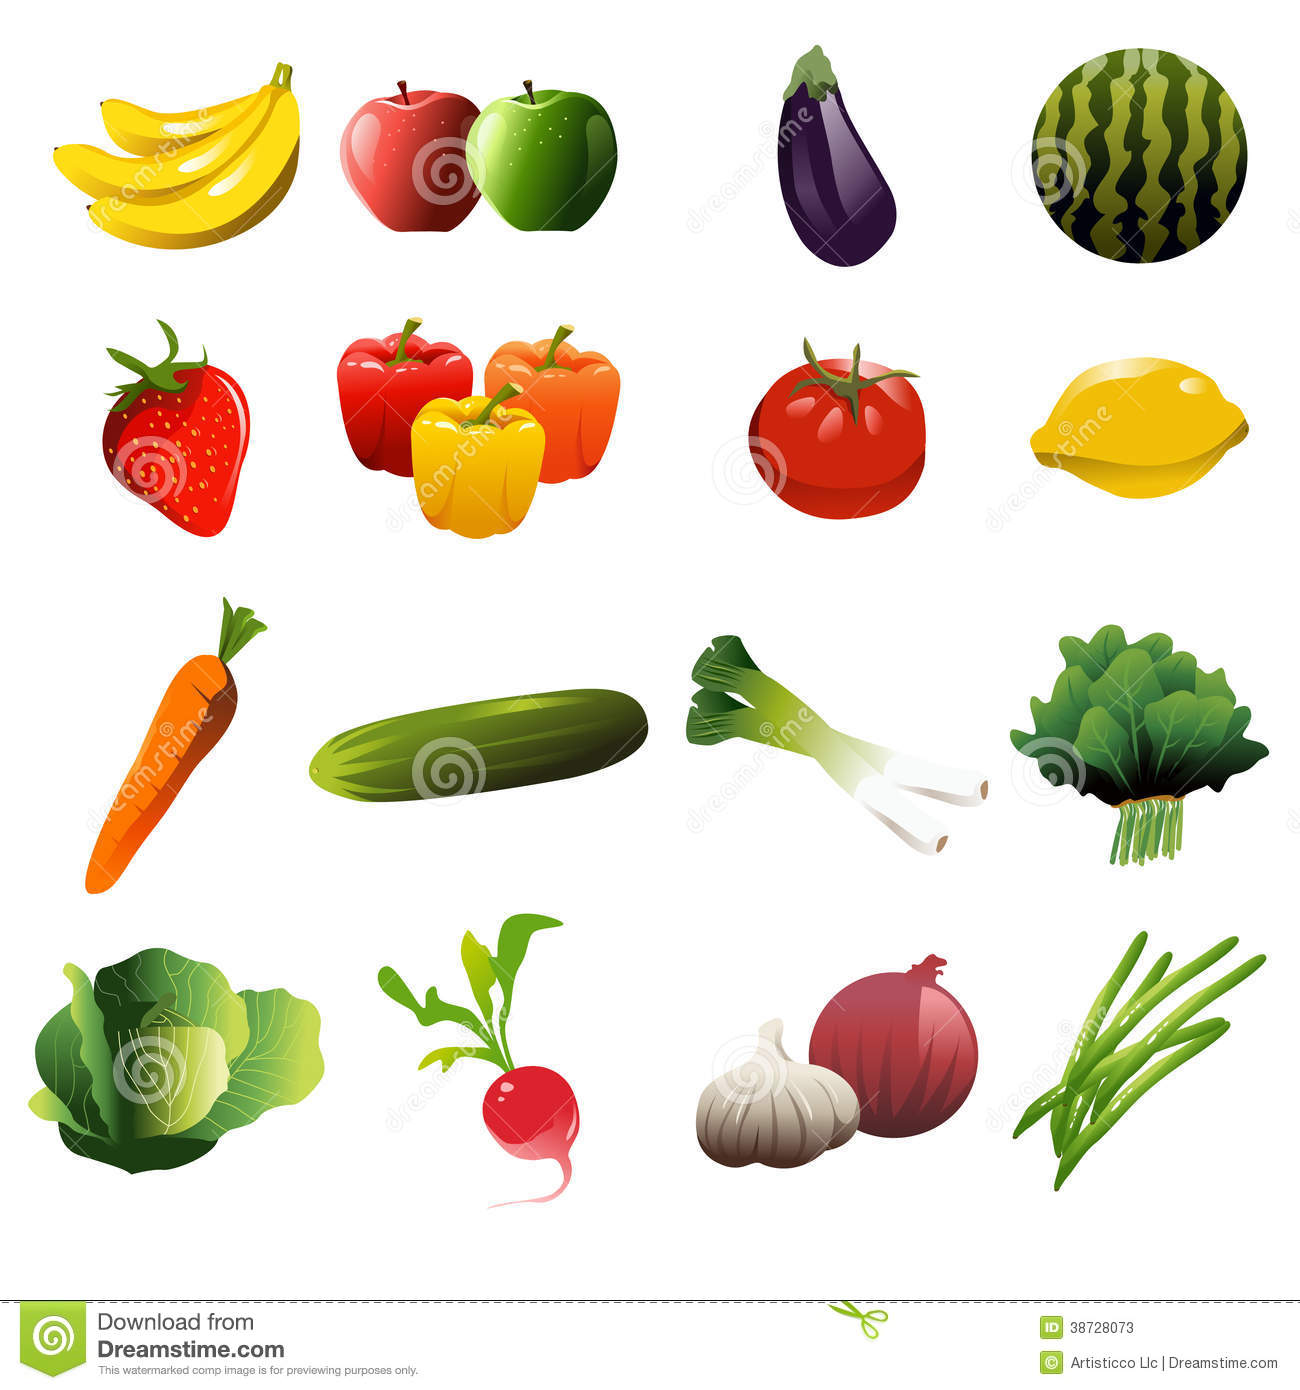 Obst und gemse clipart svg black and white download Red Green Yellow Apples Clip Art Stock Photos, Images, & Pictures ... svg black and white download